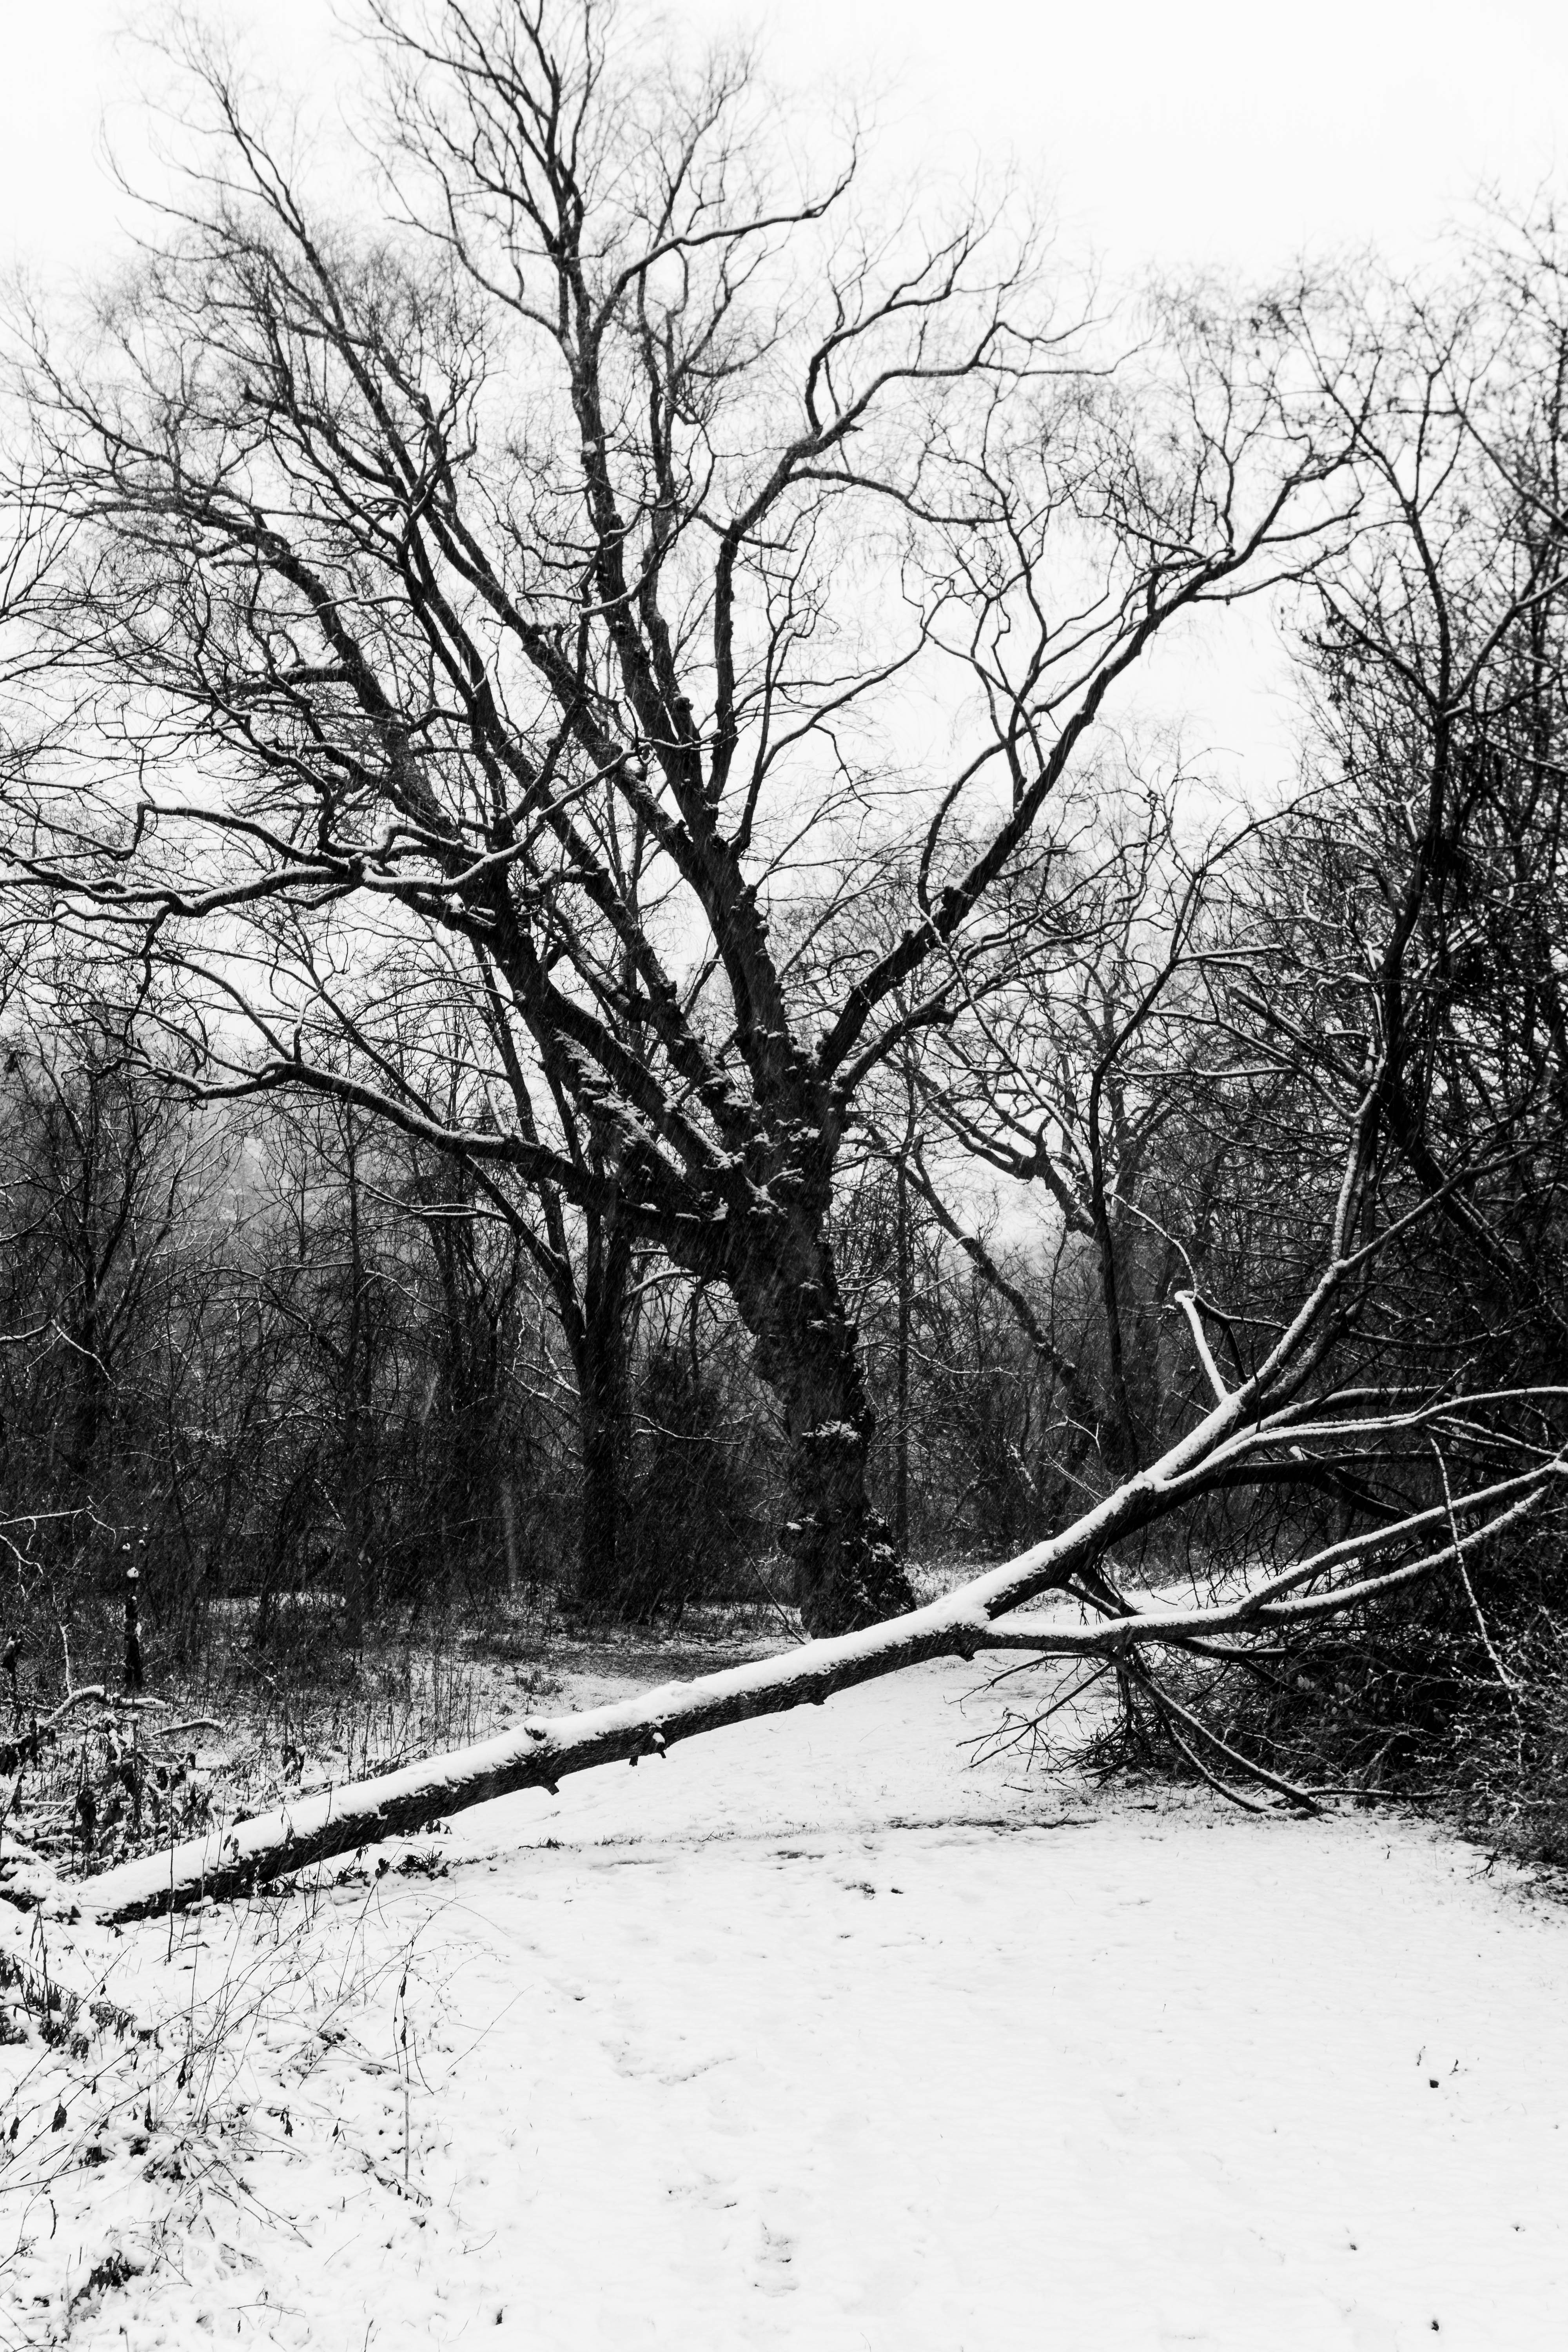 81164 free wallpaper 1080x2400 for phone, download images Winter, Nature, Trees, Snow, Bw, Chb 1080x2400 for mobile